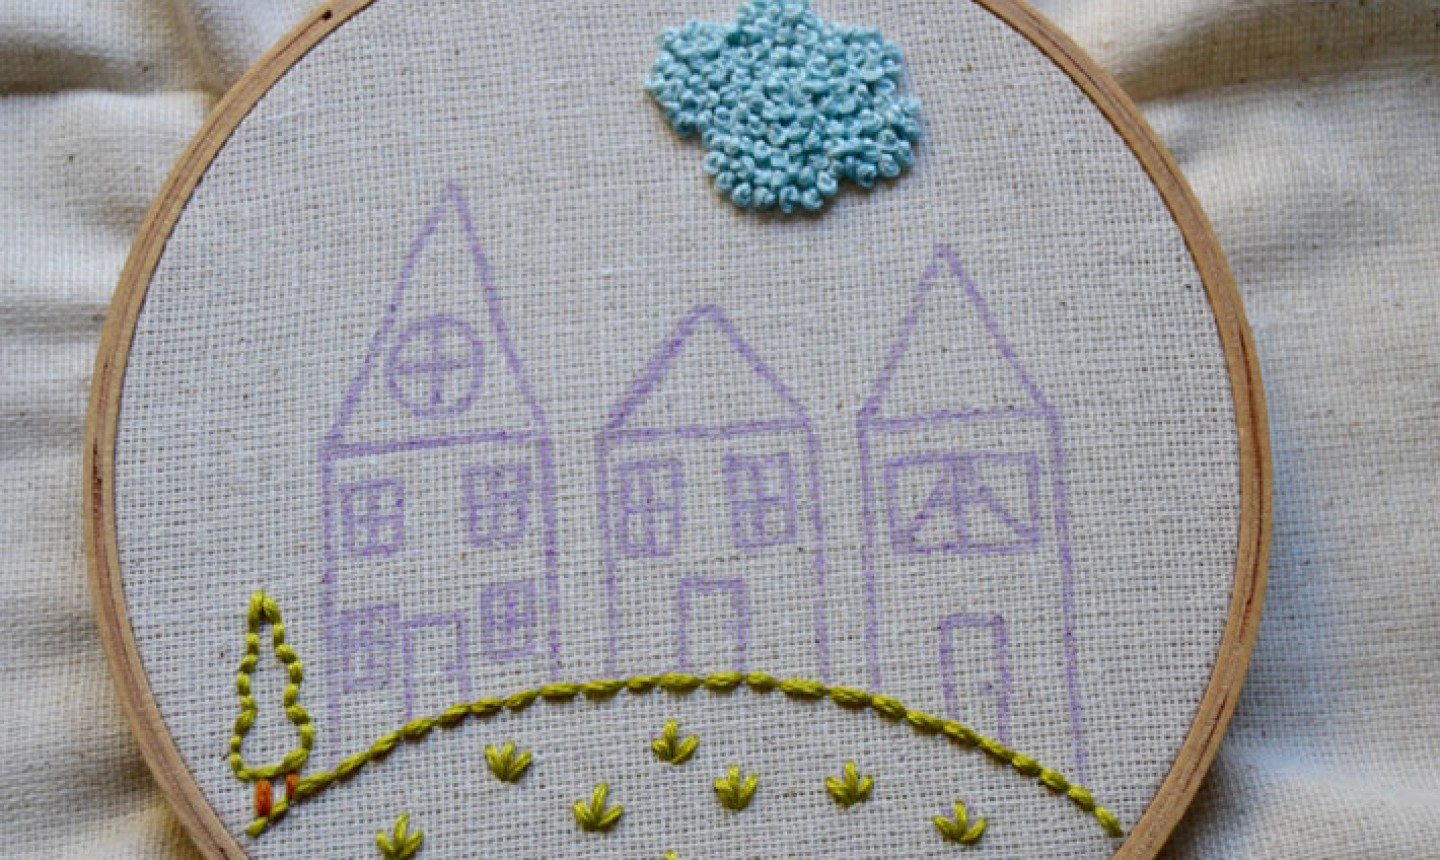 Embroidery For Beginners Free Patterns Embroidered House Neighborhood Tutorial